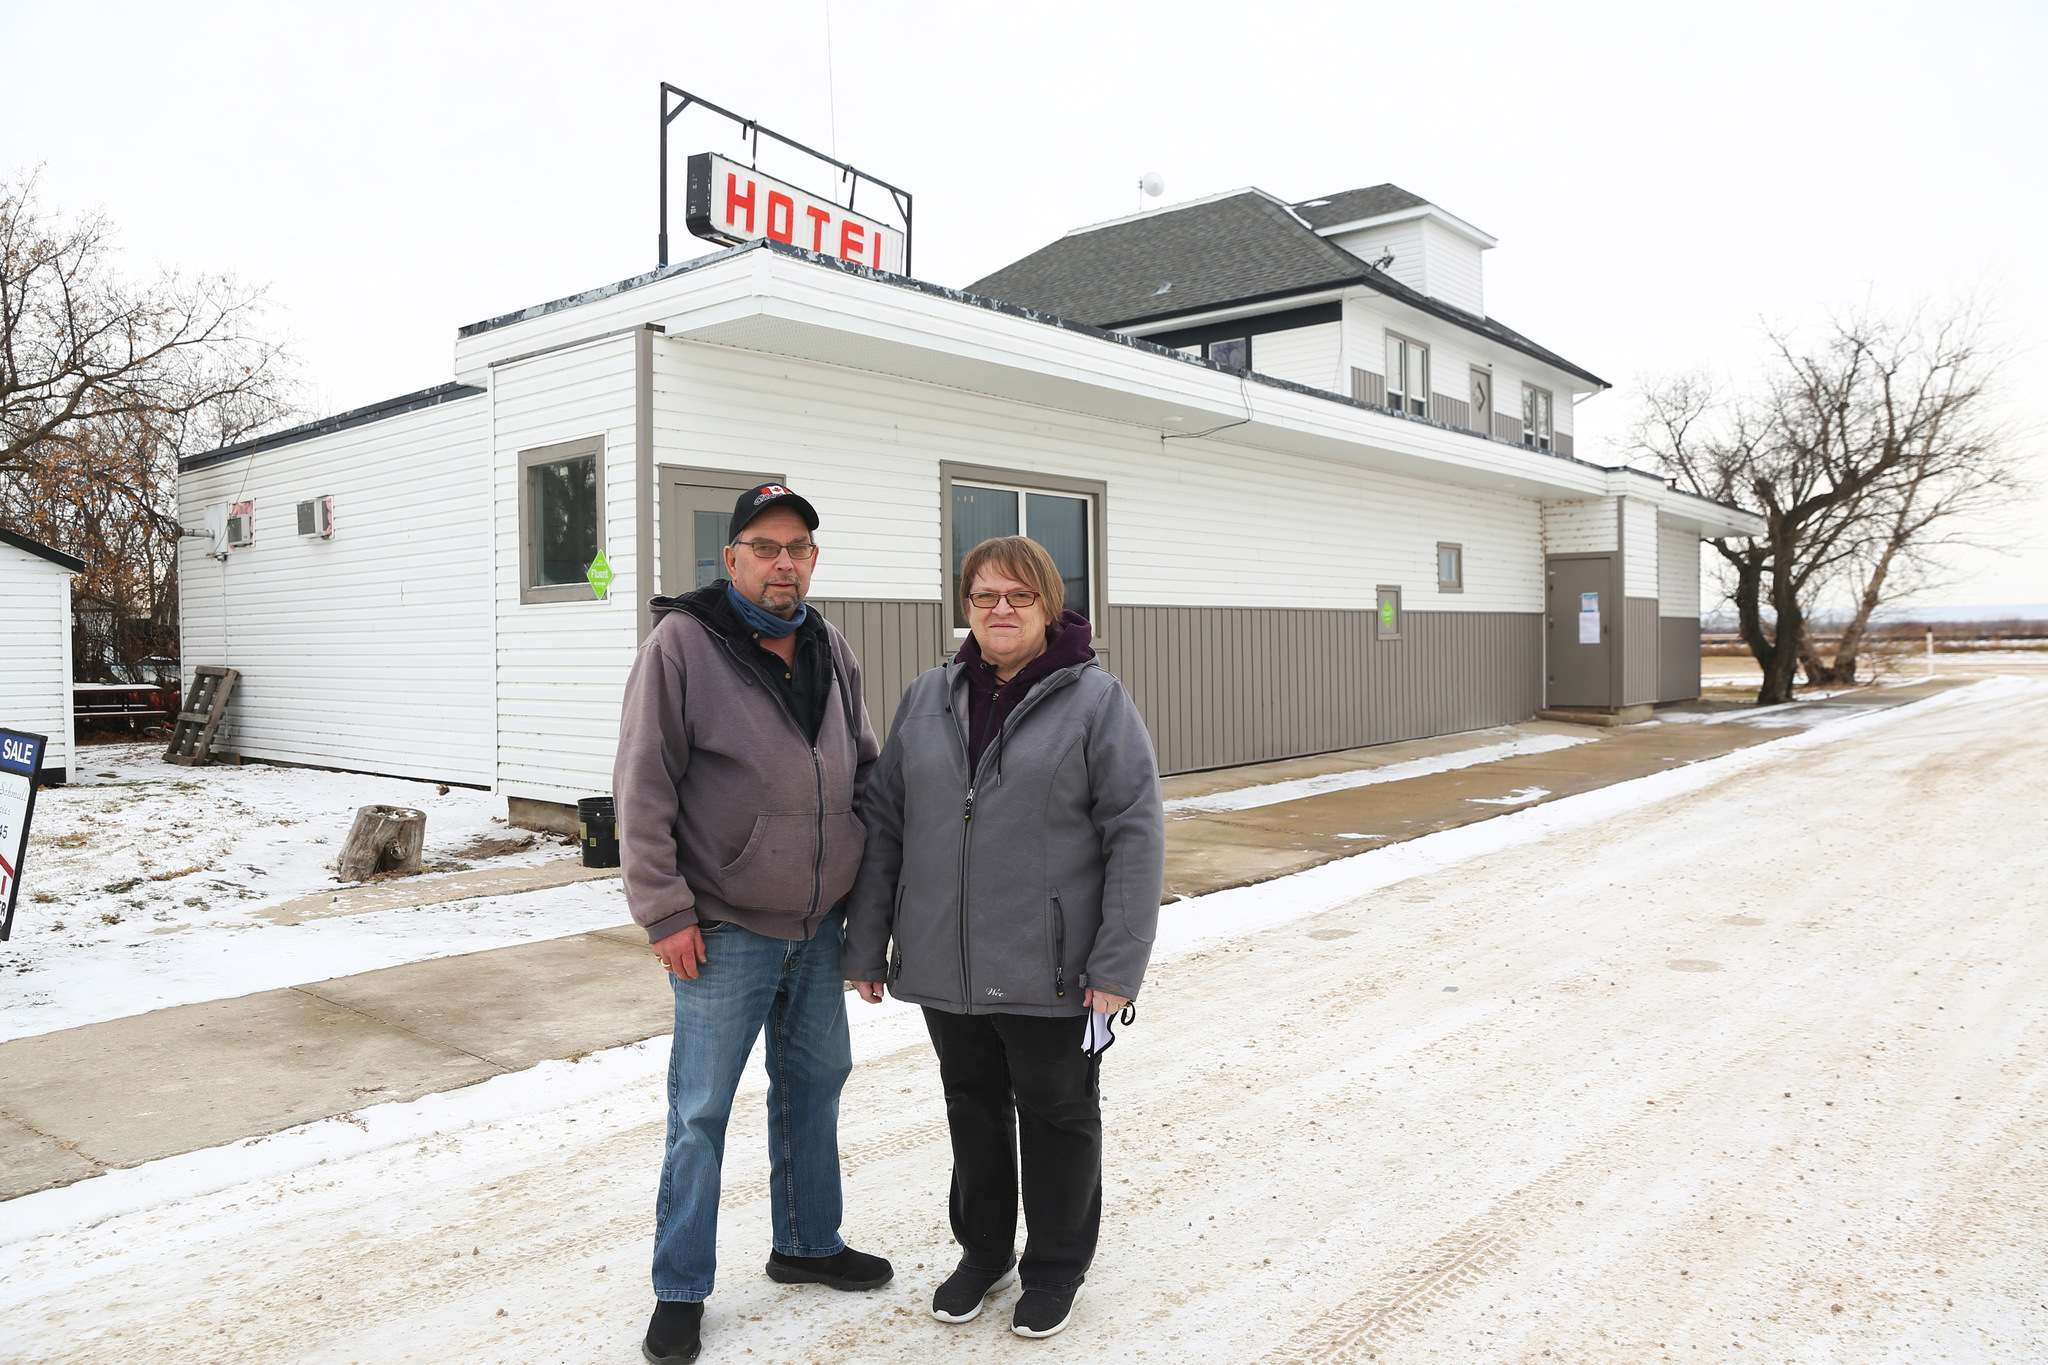 MIKE DEAL / WINNIPEG FREE PRESS FILES  Three months after Premier Brian Pallister publicly shamed the Corona Hotel in Glenella for receiving a $1,296 ticket from an inspector who deemed people drinking and playing pool were in violation of the health order, owner Bob Fuglsang is still waiting to find out if he'll have to pay the fine.